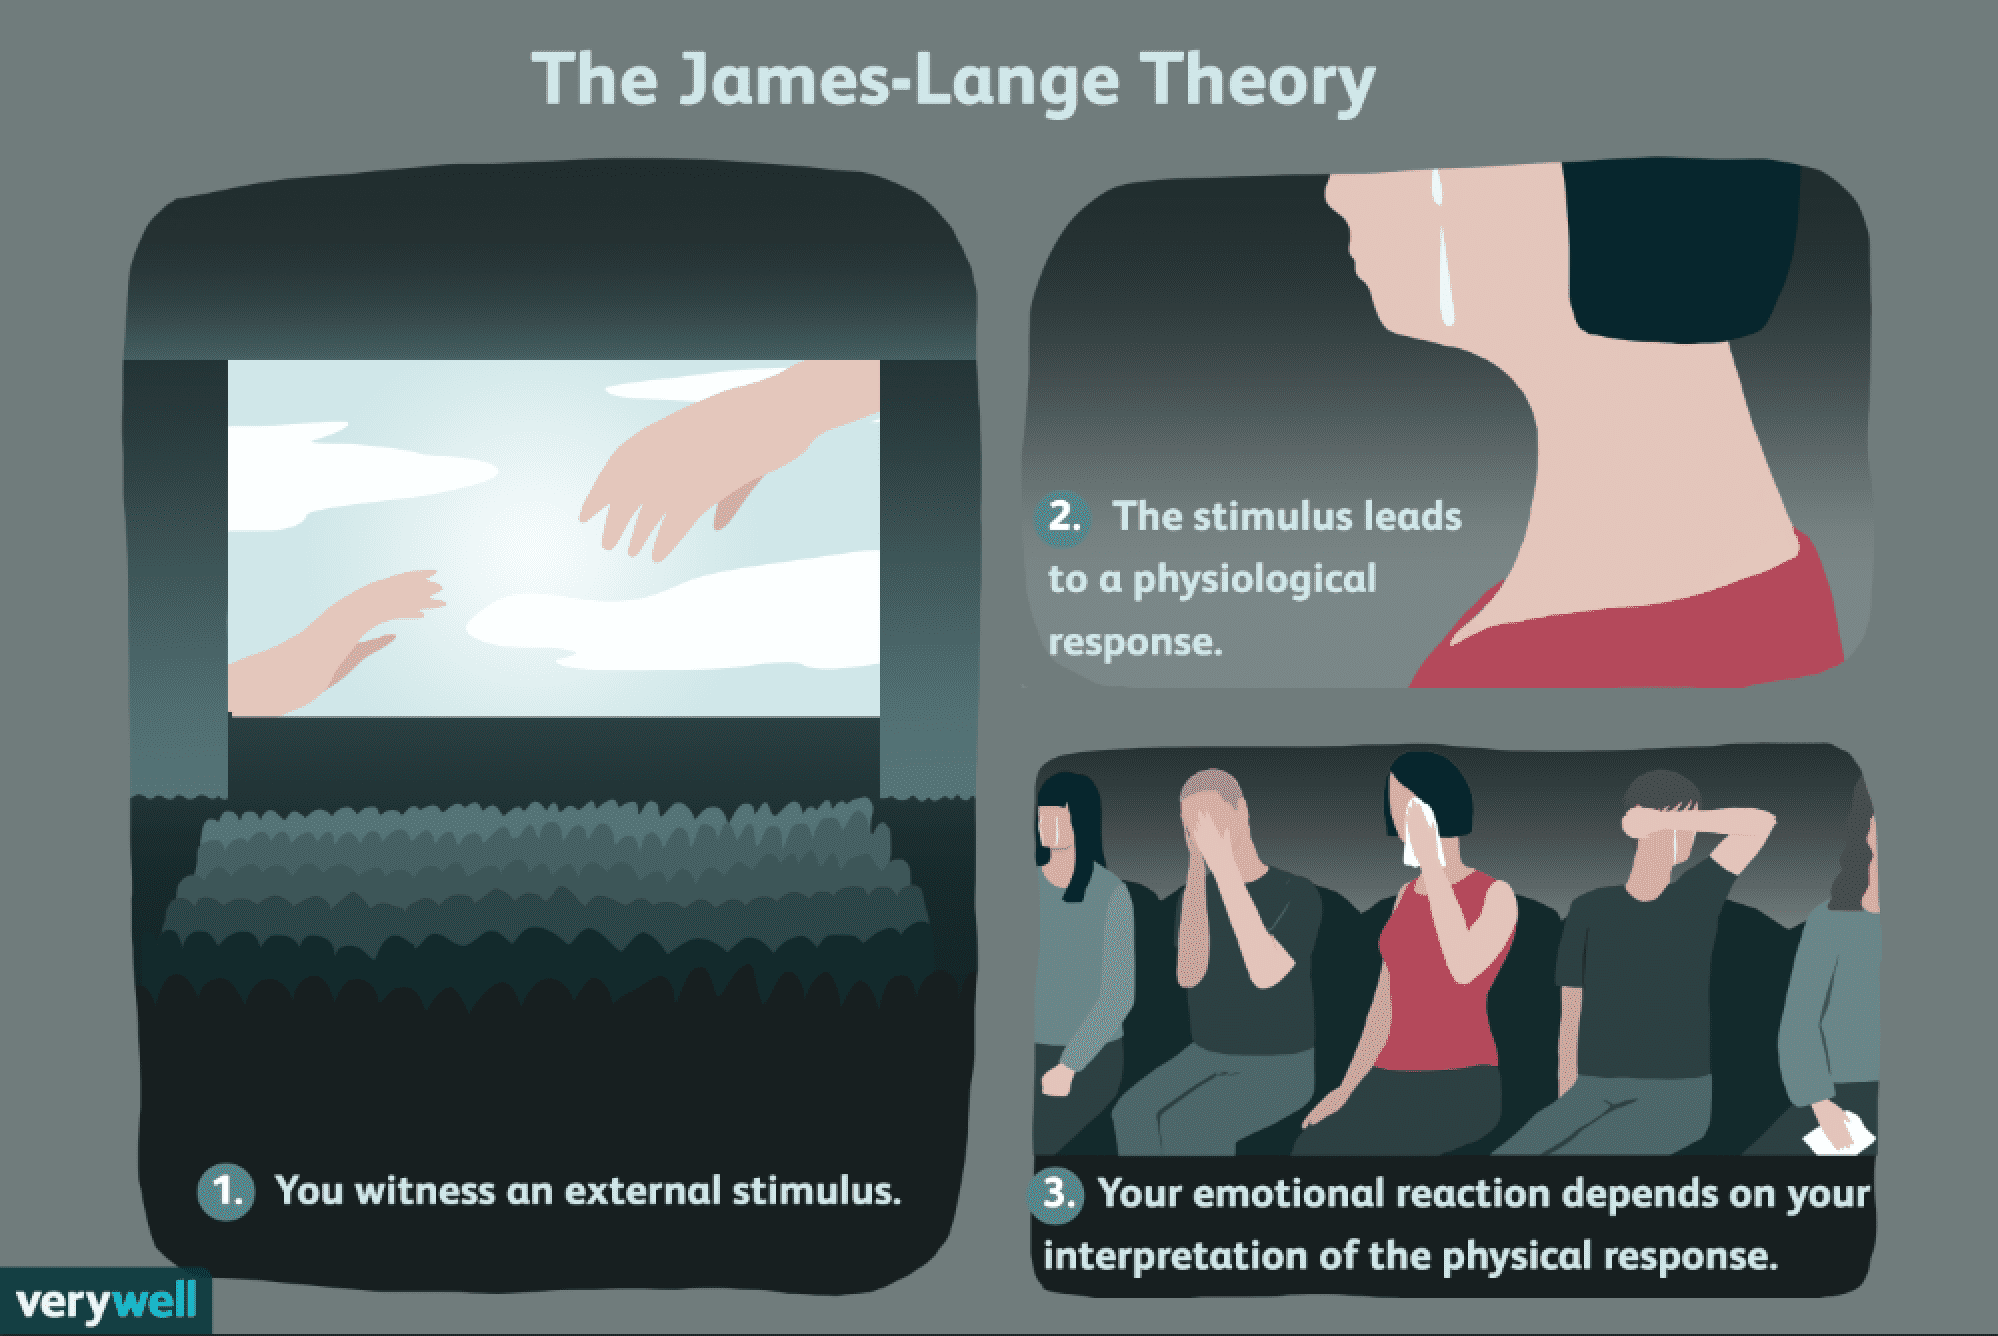 The James-Lange Theory of Emotion